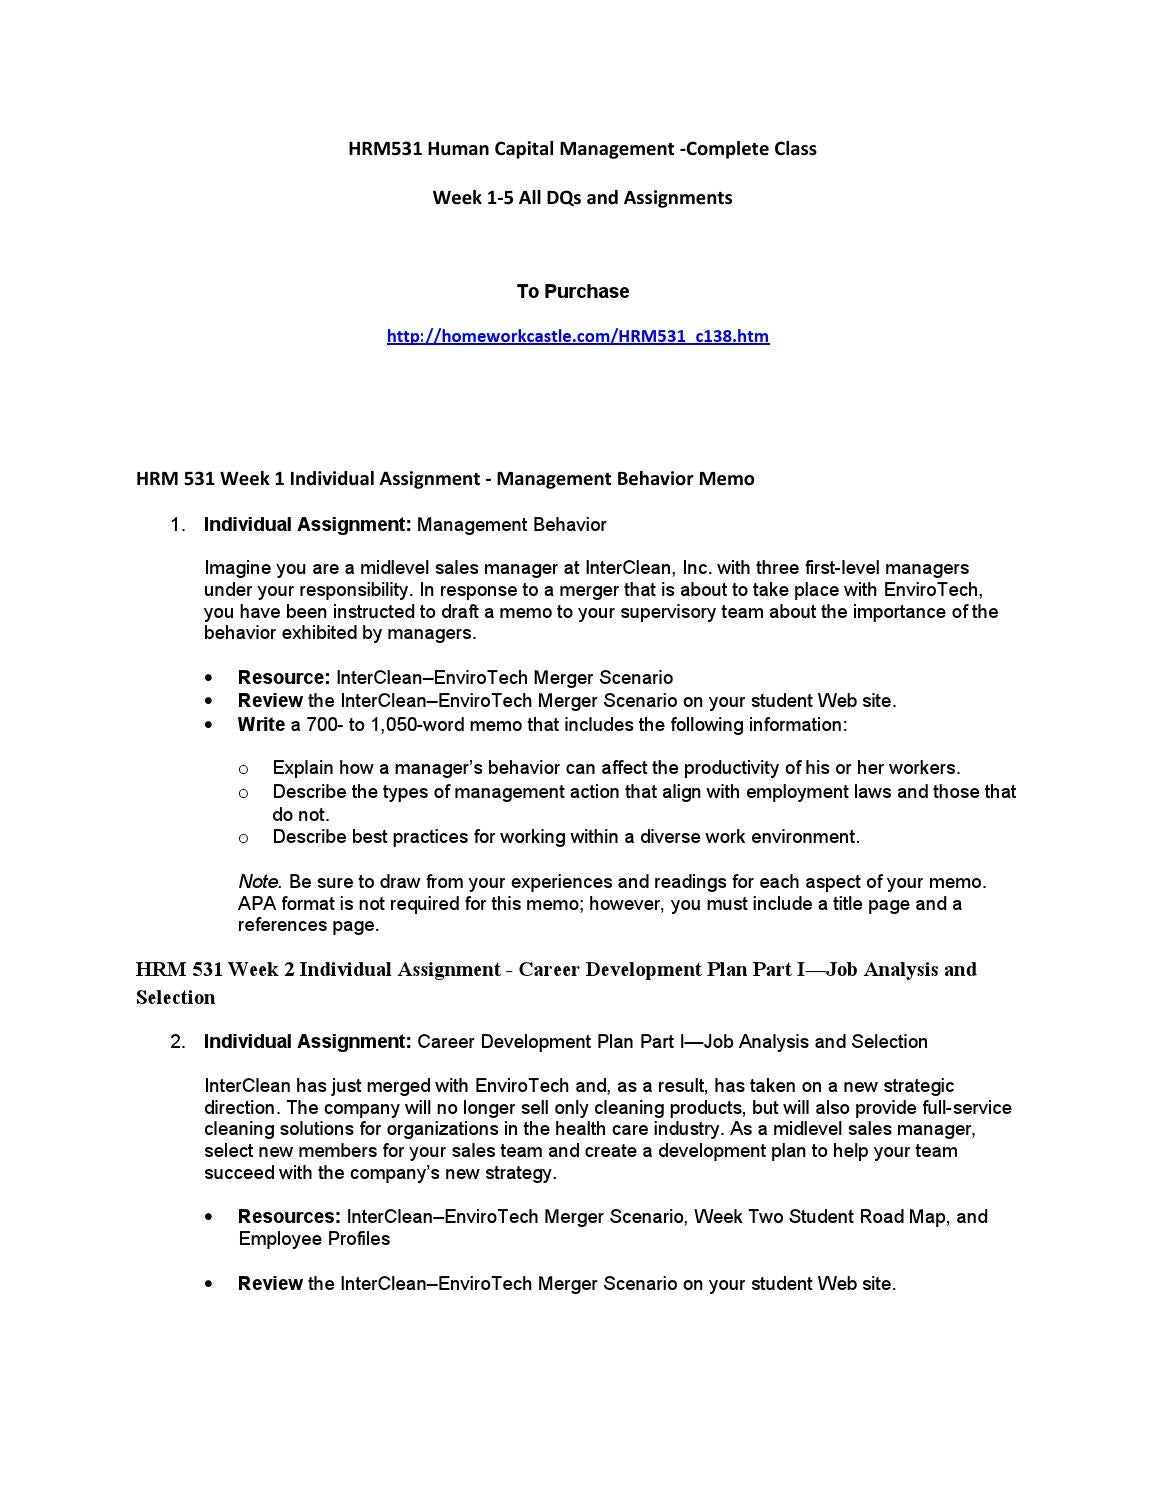 job analysis and selection inter clean View homework help - hrm5312_career_dev_part_1 from hrm 531 101 at university of phoenix interclean career development plan part i job analysis and selection hrm 531 interclean career development.